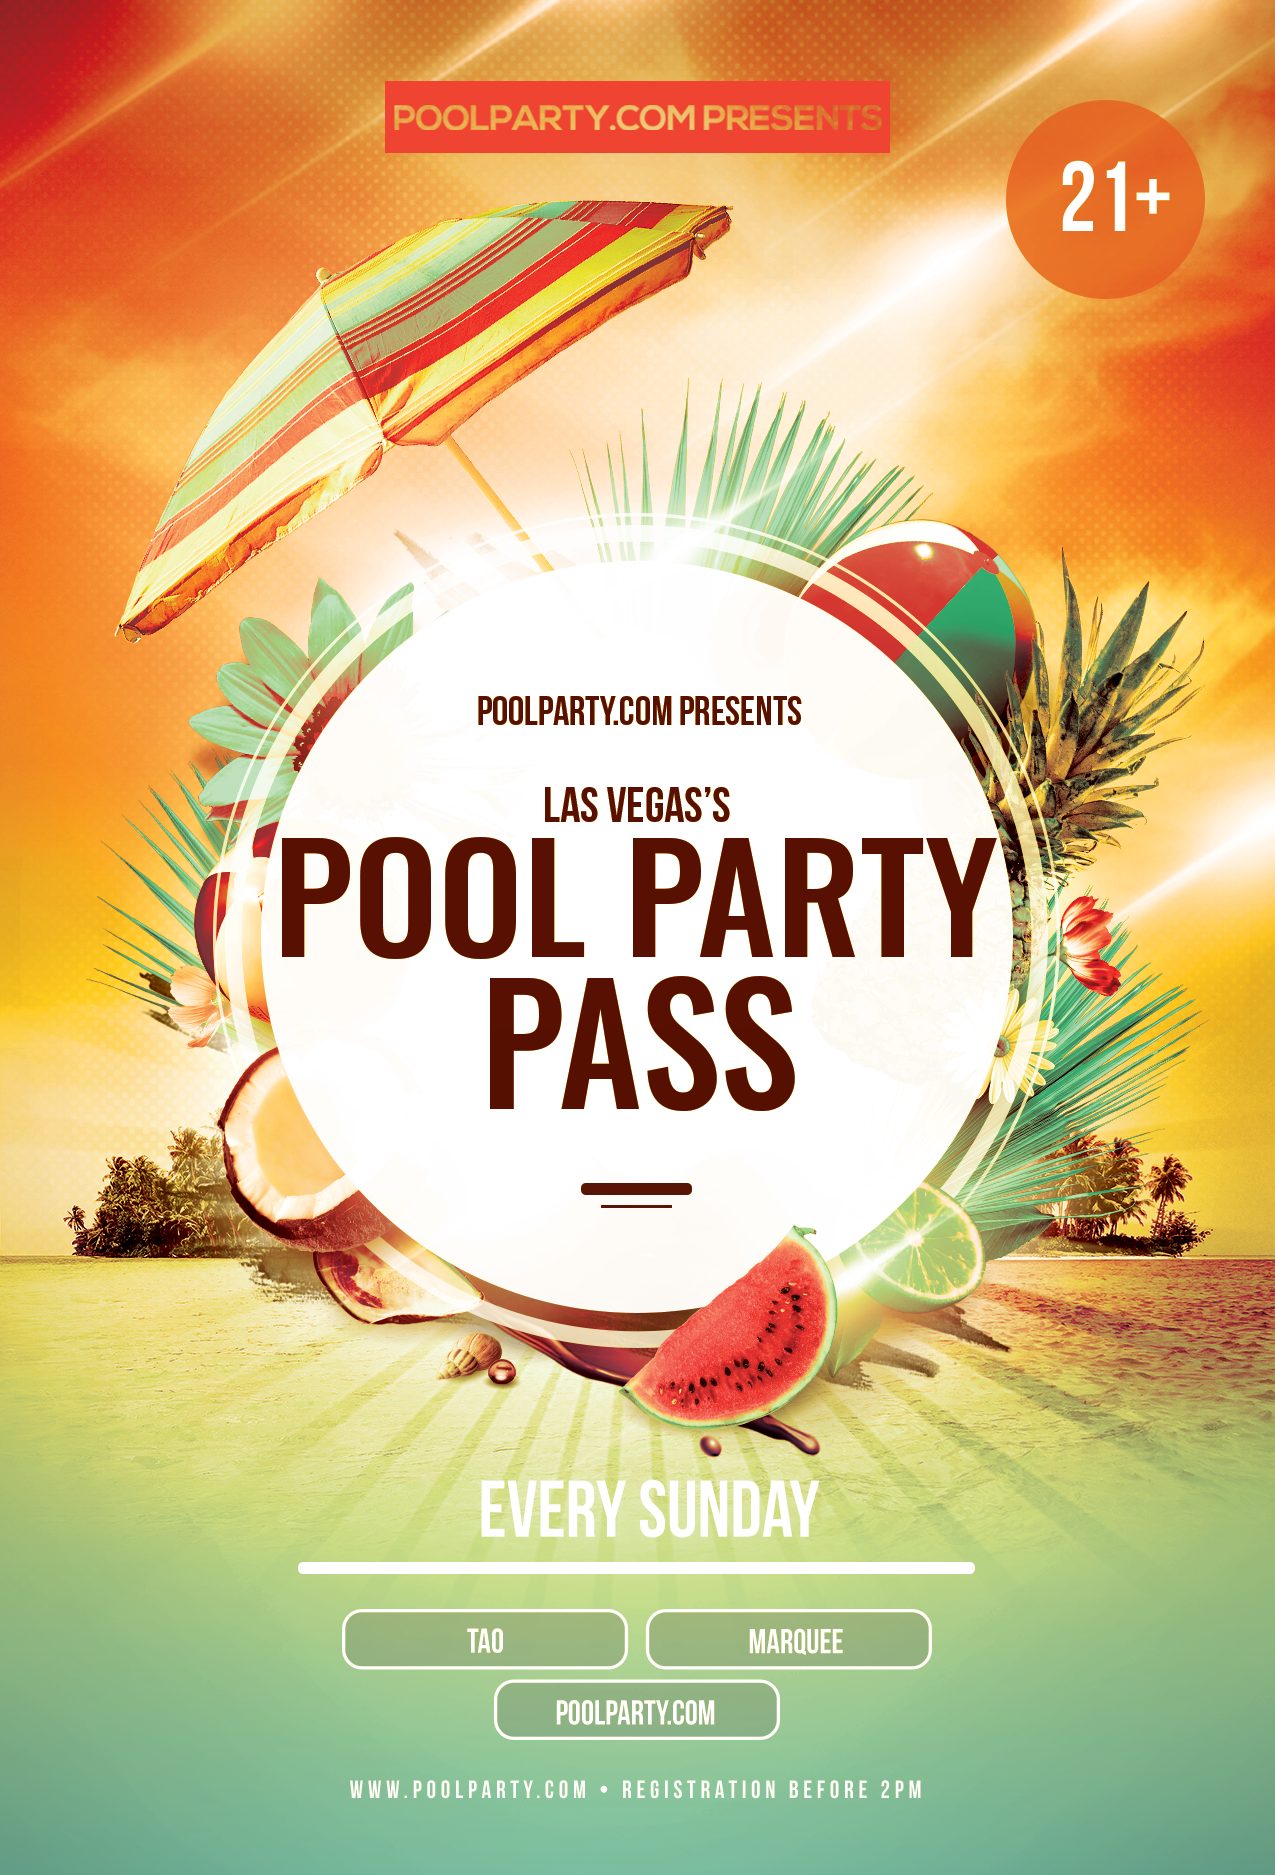 Sunday's Pool Party Pass (September 08th)*NOW INCLUDING FREE ADMISSION TO TAO NIGHTCLUB*